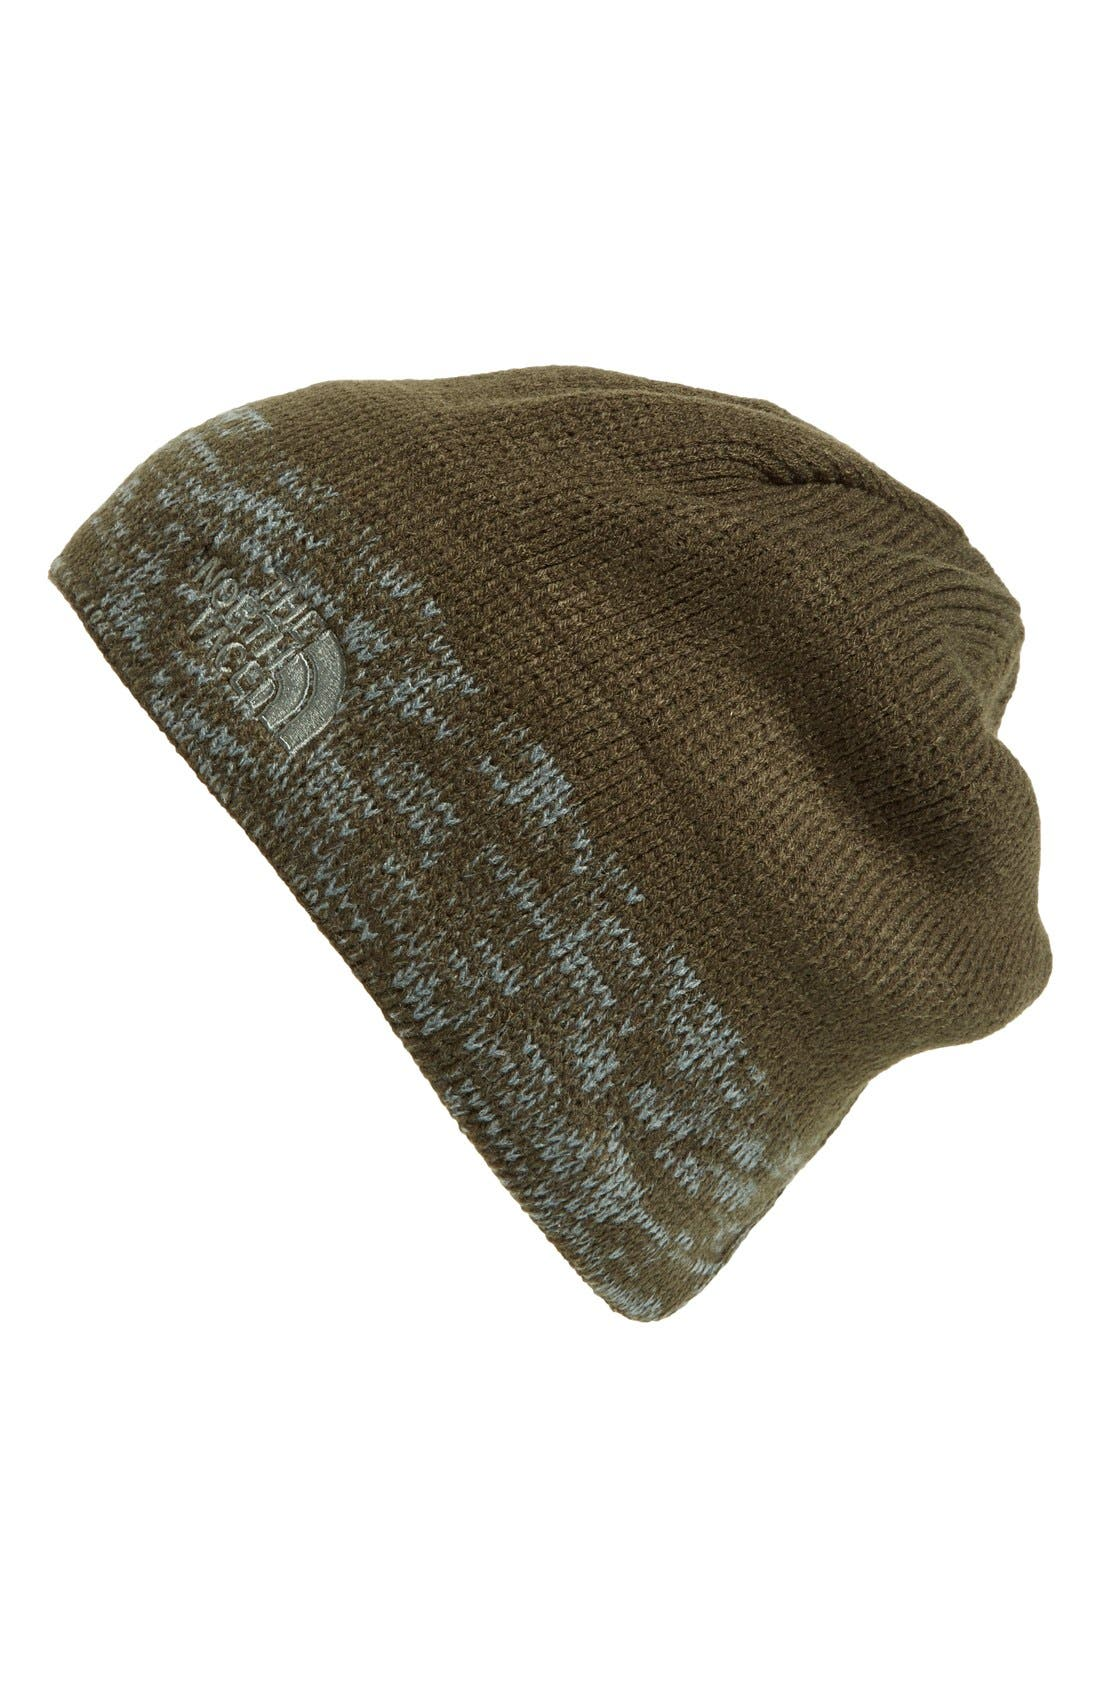 'Bones' Microfleece Beanie,                             Main thumbnail 7, color,